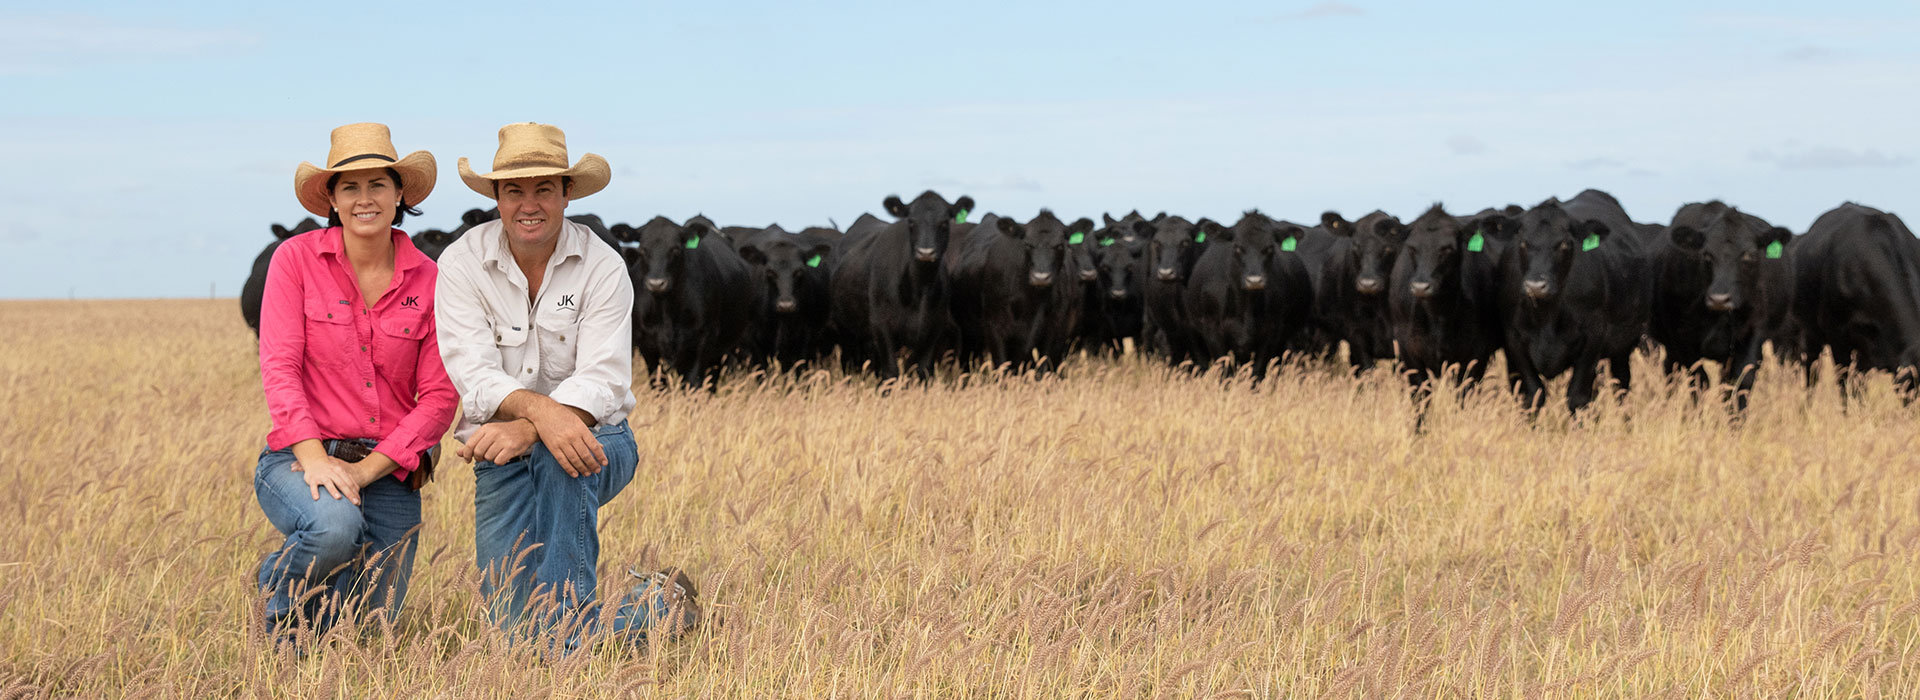 Justin and Kate Boshammer kneeling in front of Angus cattle